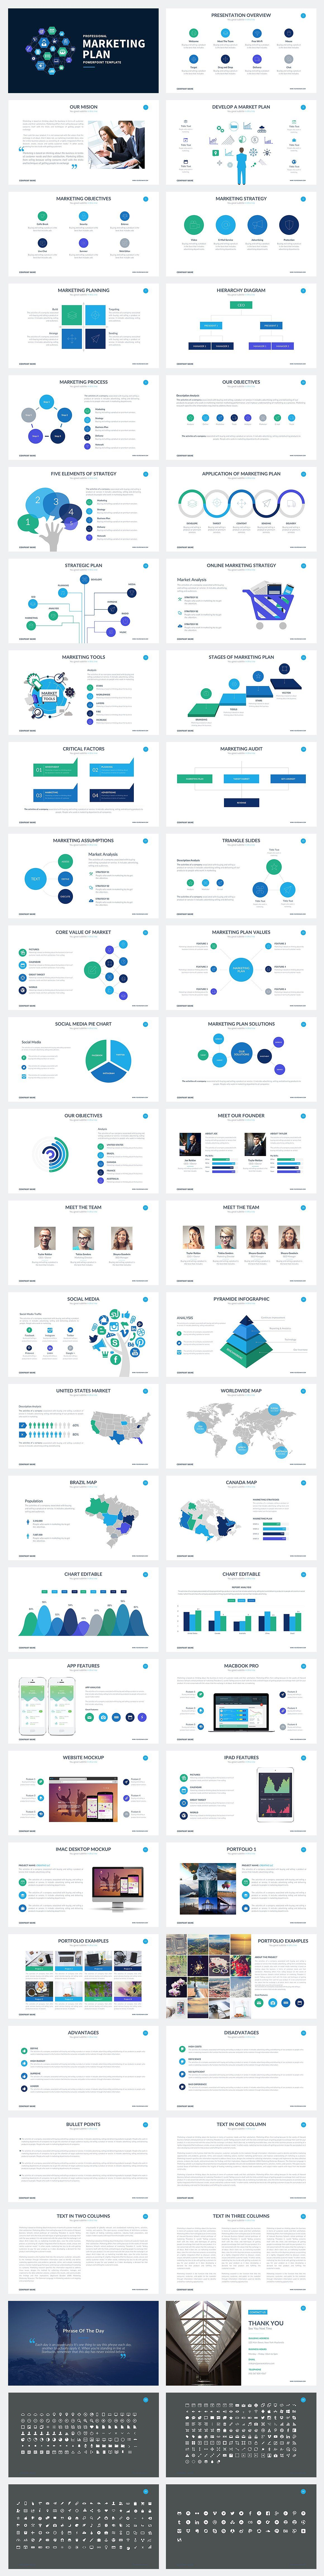 Marketing Plan Powerpoint Template by SlidePro on @creativemarket ...